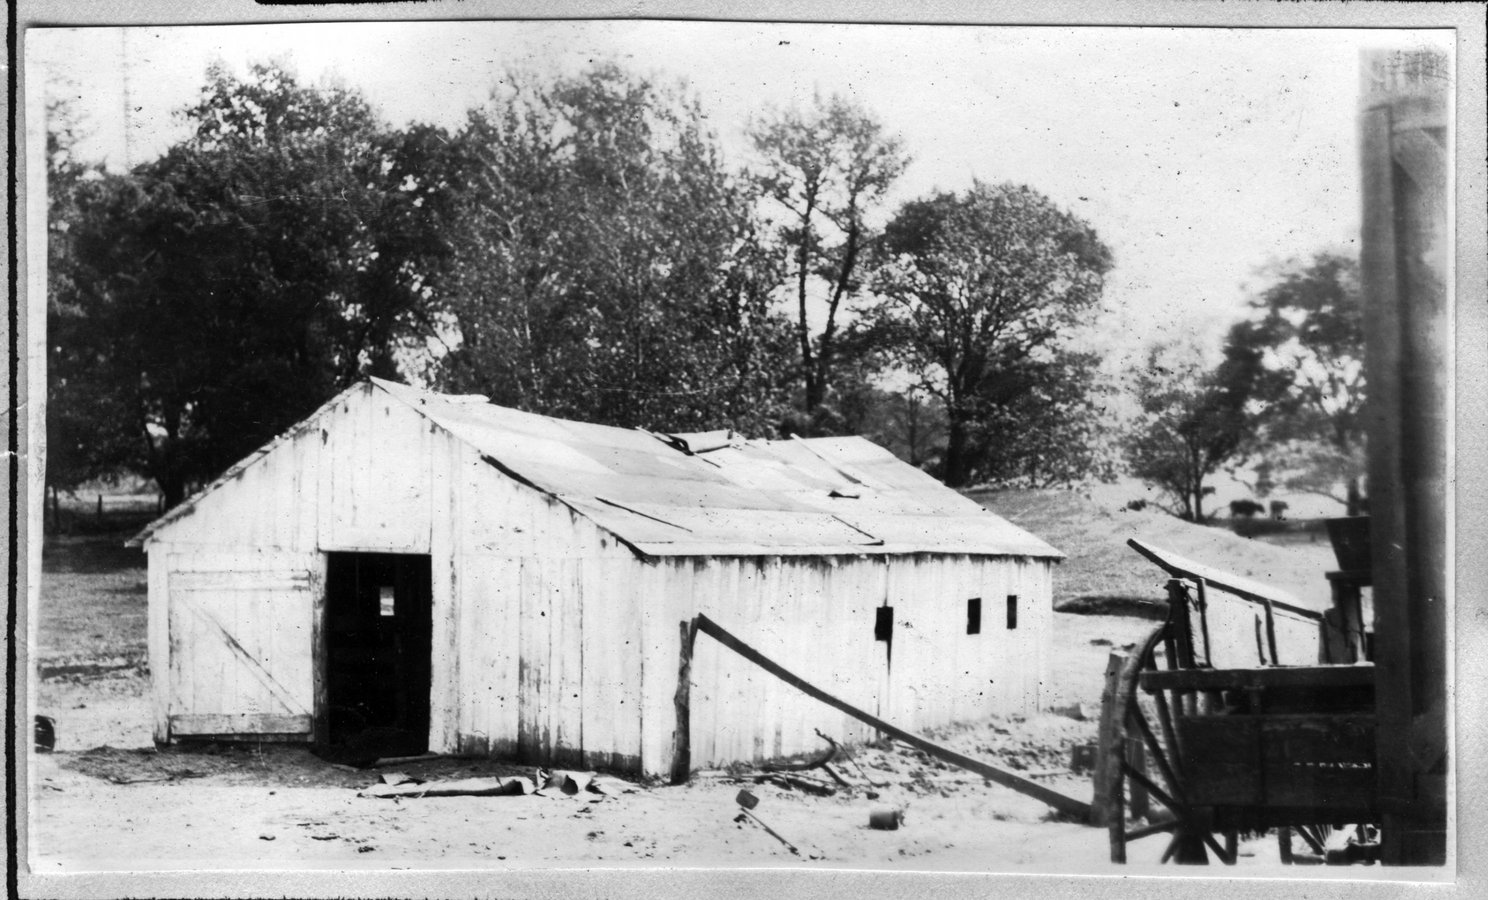 023~J. J. Wilson Old Barn Aug 1920.jpg